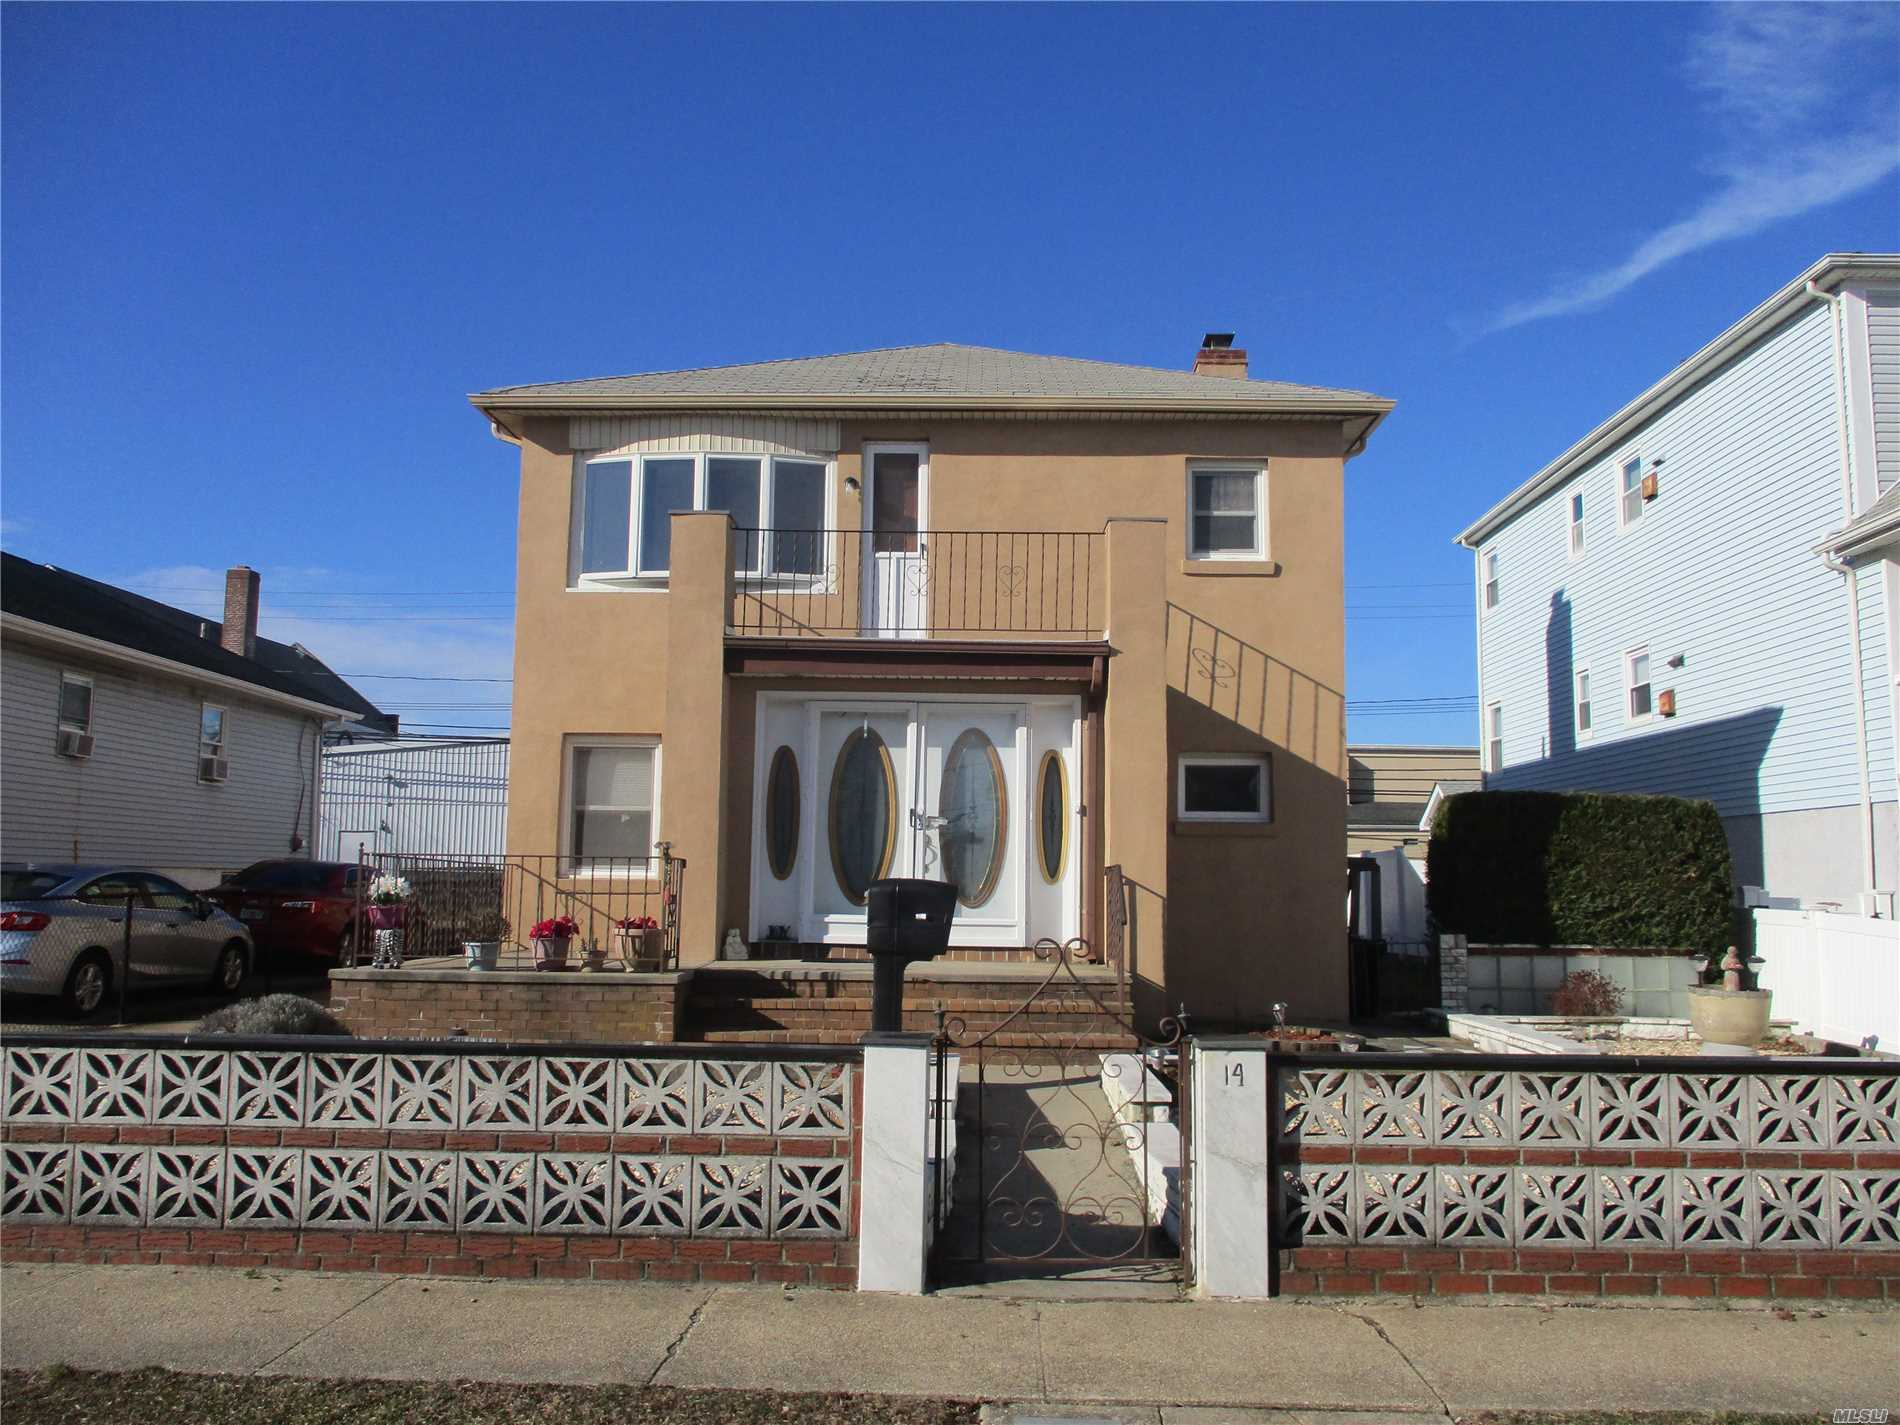 : 3 Bedroom, 1 Bath, 2nd Floor Apartment Located In Island Park. Very Clean Apartment. Freshly Painted With Newly Finished Hard Wood Floors. Walk To Lirr, And All Shopping.